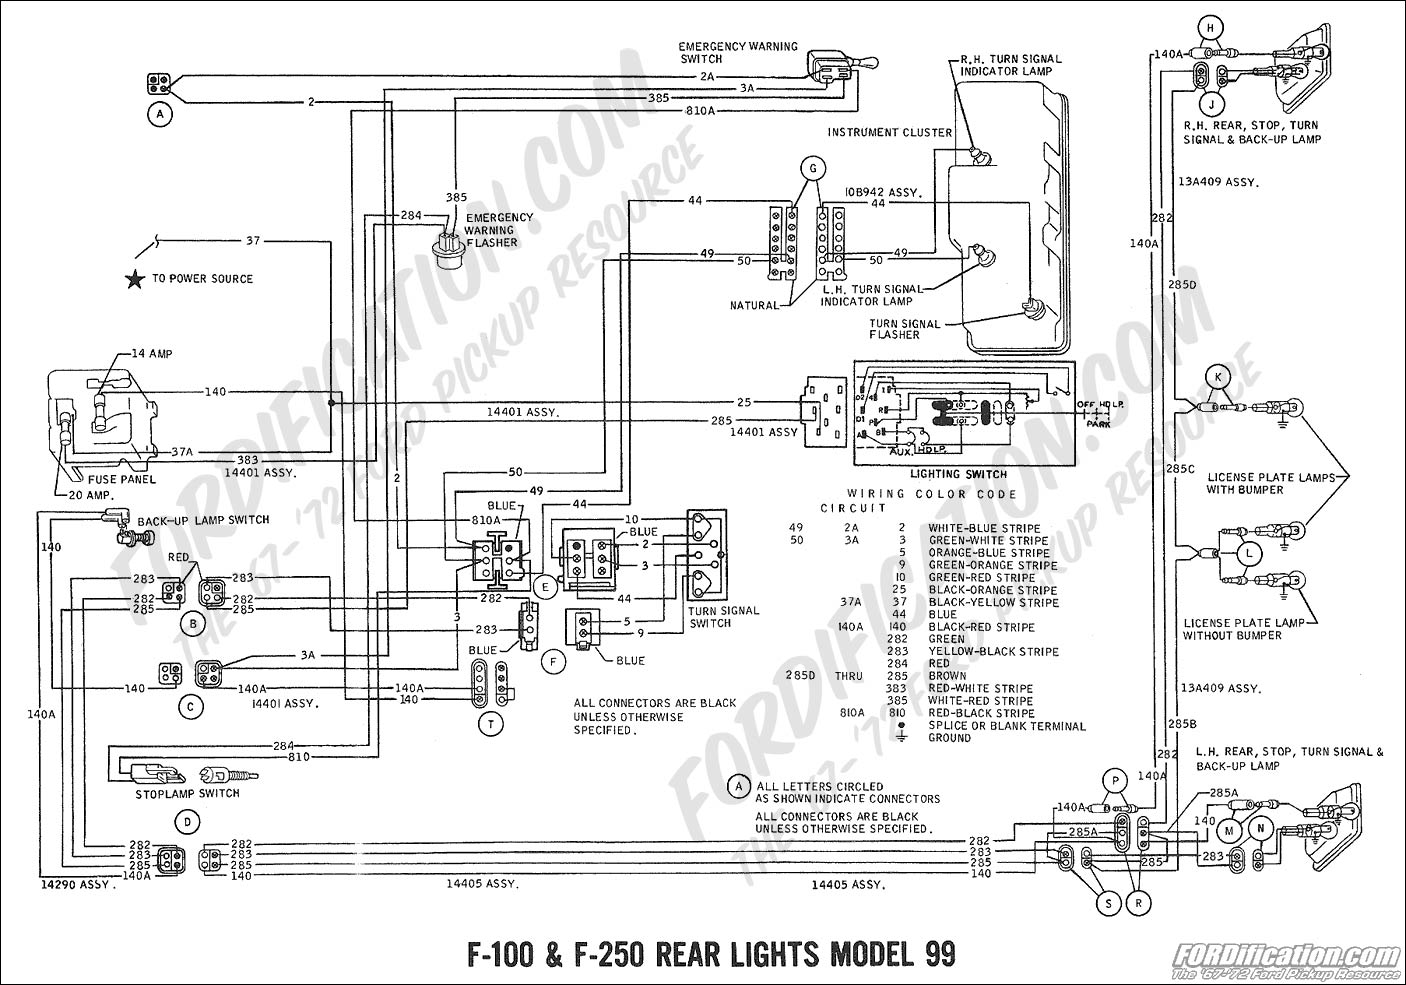 377458012493504046 together with 7 Plug Wiring Diagram furthermore Lance Truck C er Wiring Harness in addition Wiring Diagram 200 Civic Parking Lights likewise C er Wiring Diagram Converter. on lance camper wiring diagram